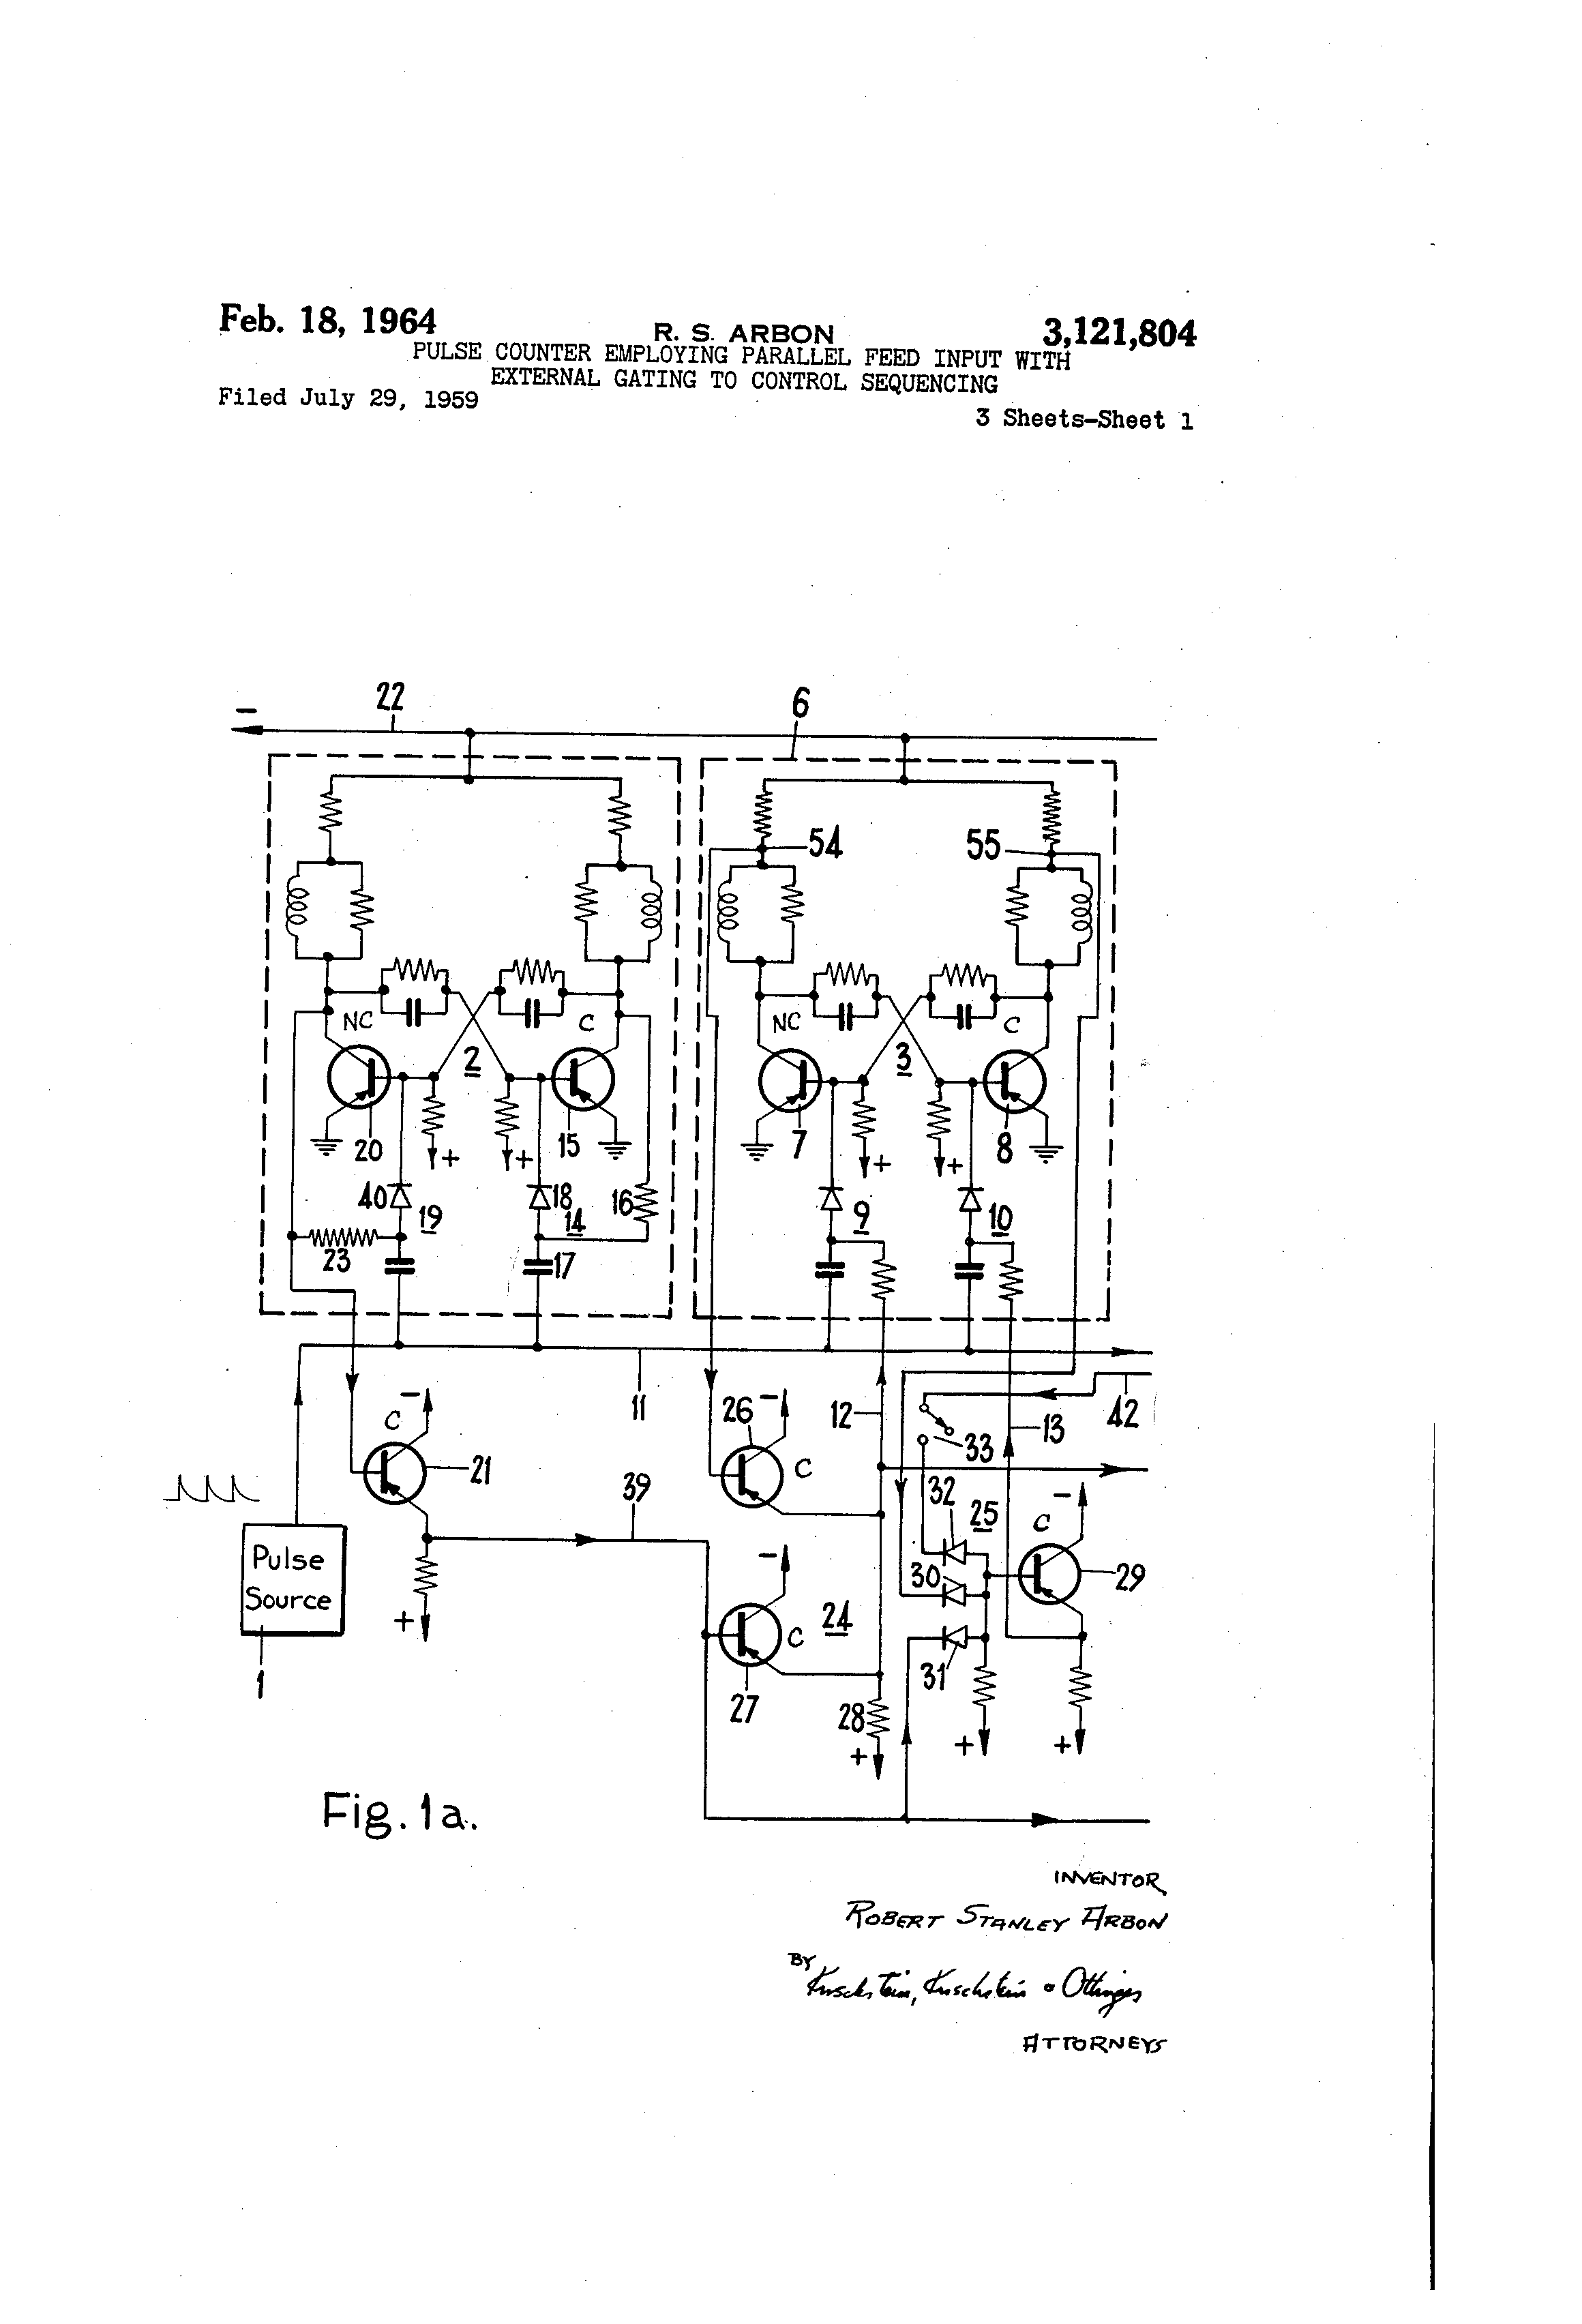 Patent US3121804 - Pulse counter employing parallel feed